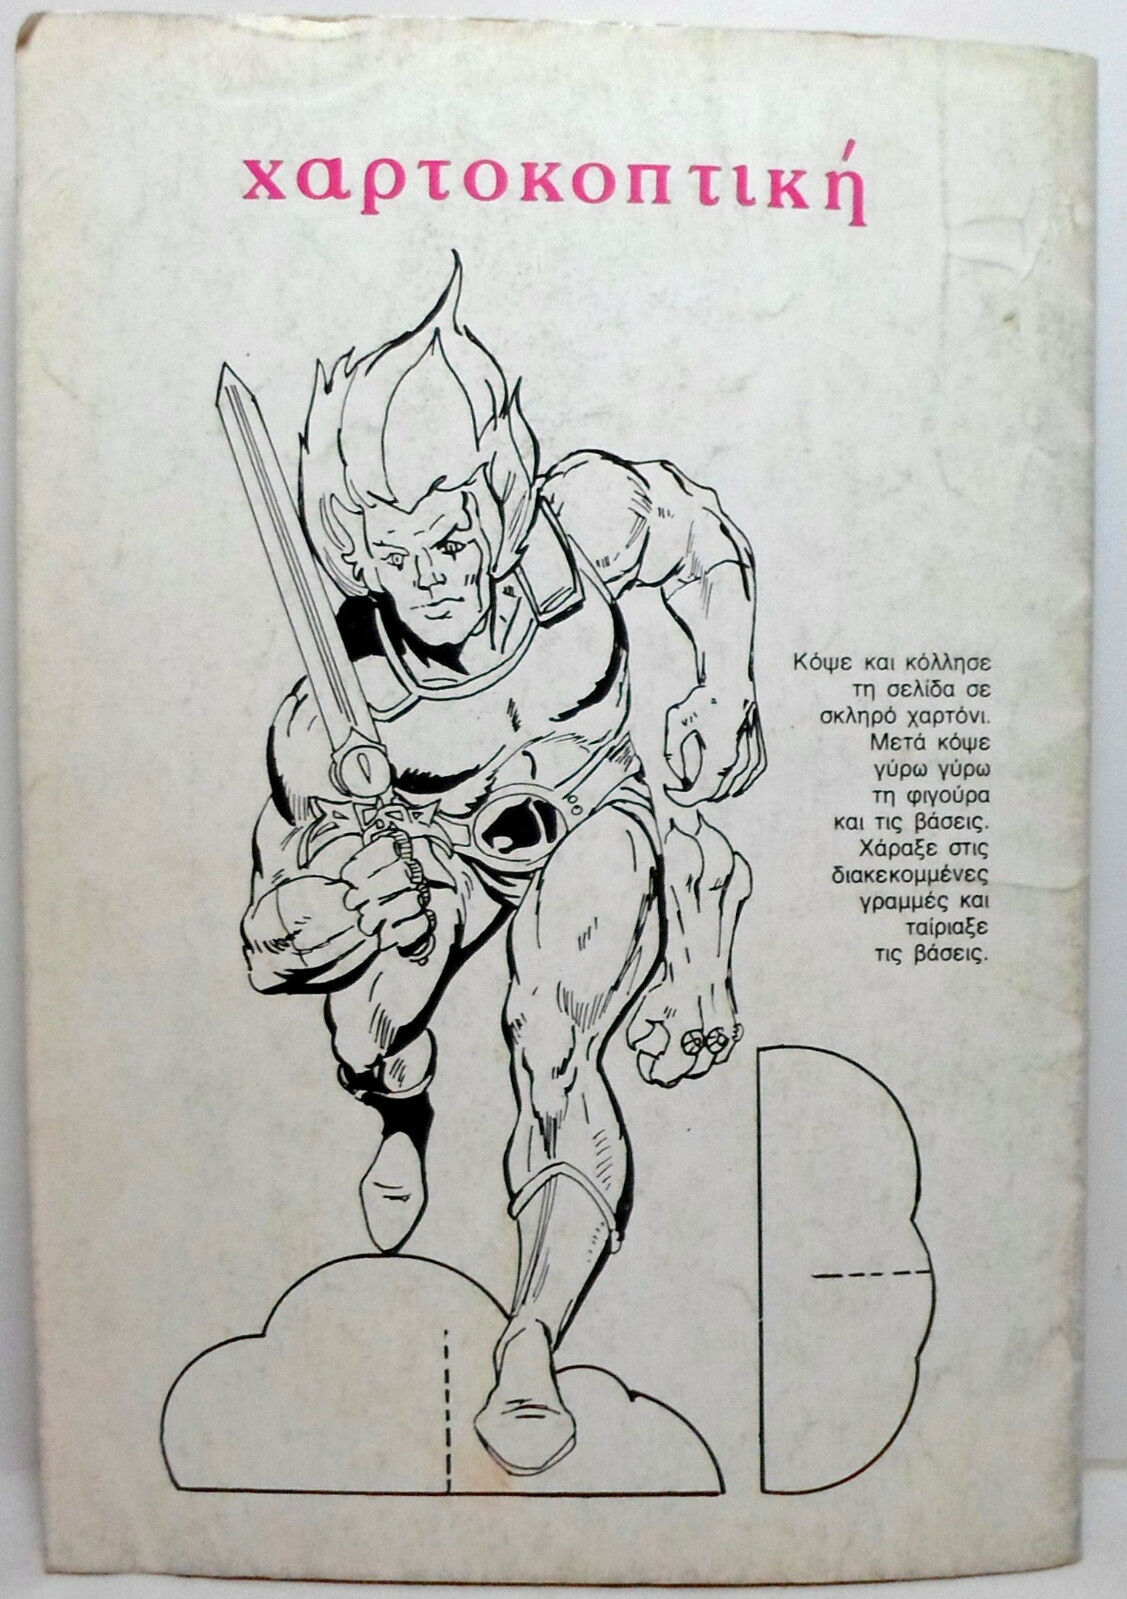 MARVEL VTG THUNDERCATS VTG MARVEL 1987 GREEK EDITION 33 COMIC BOOK ...